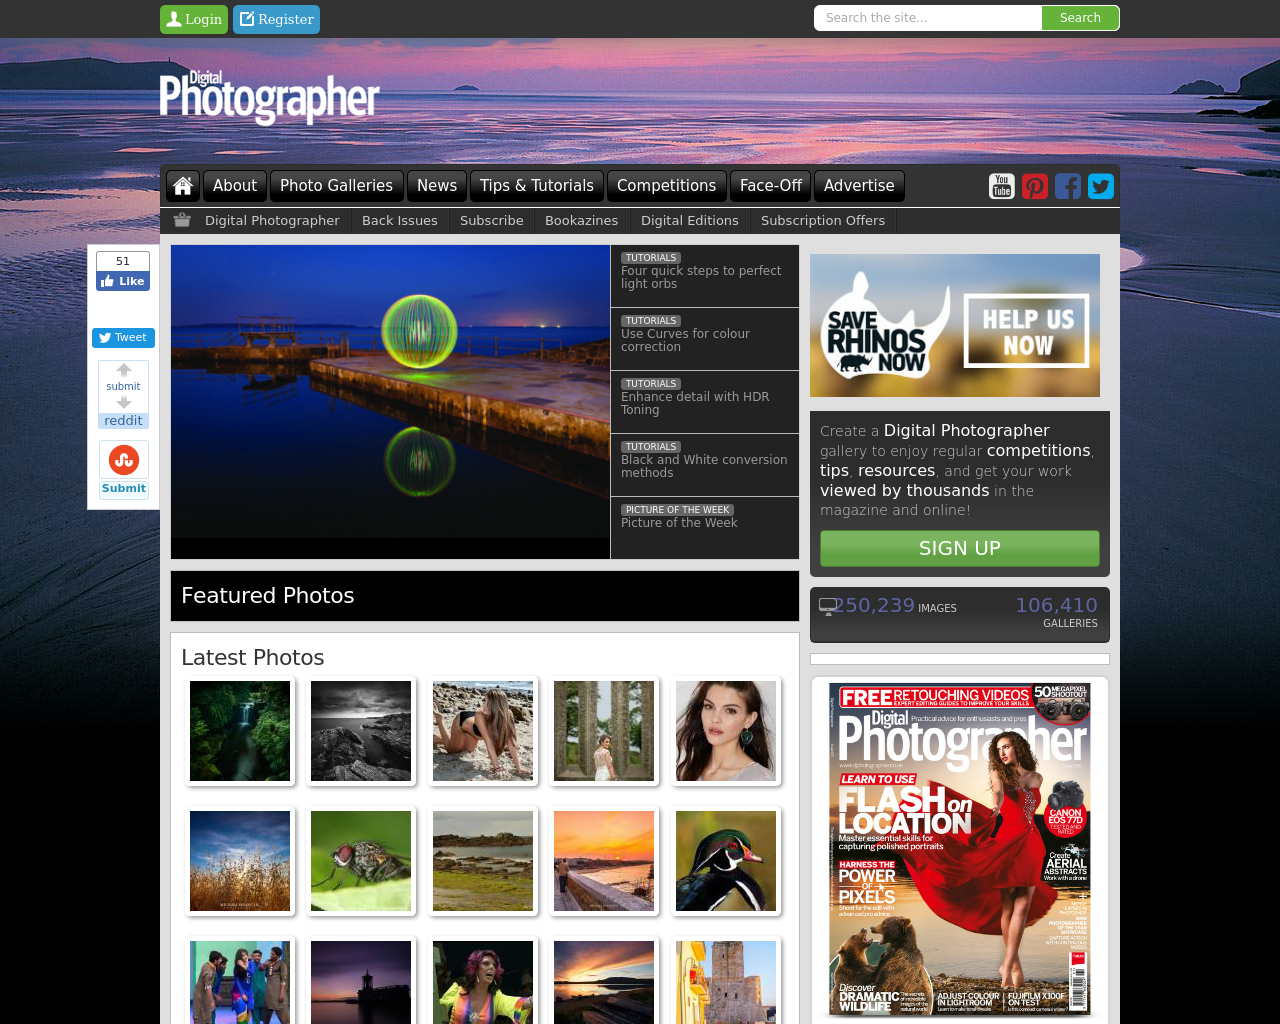 Photography-for-beginners-Advertising-Reviews-Pricing